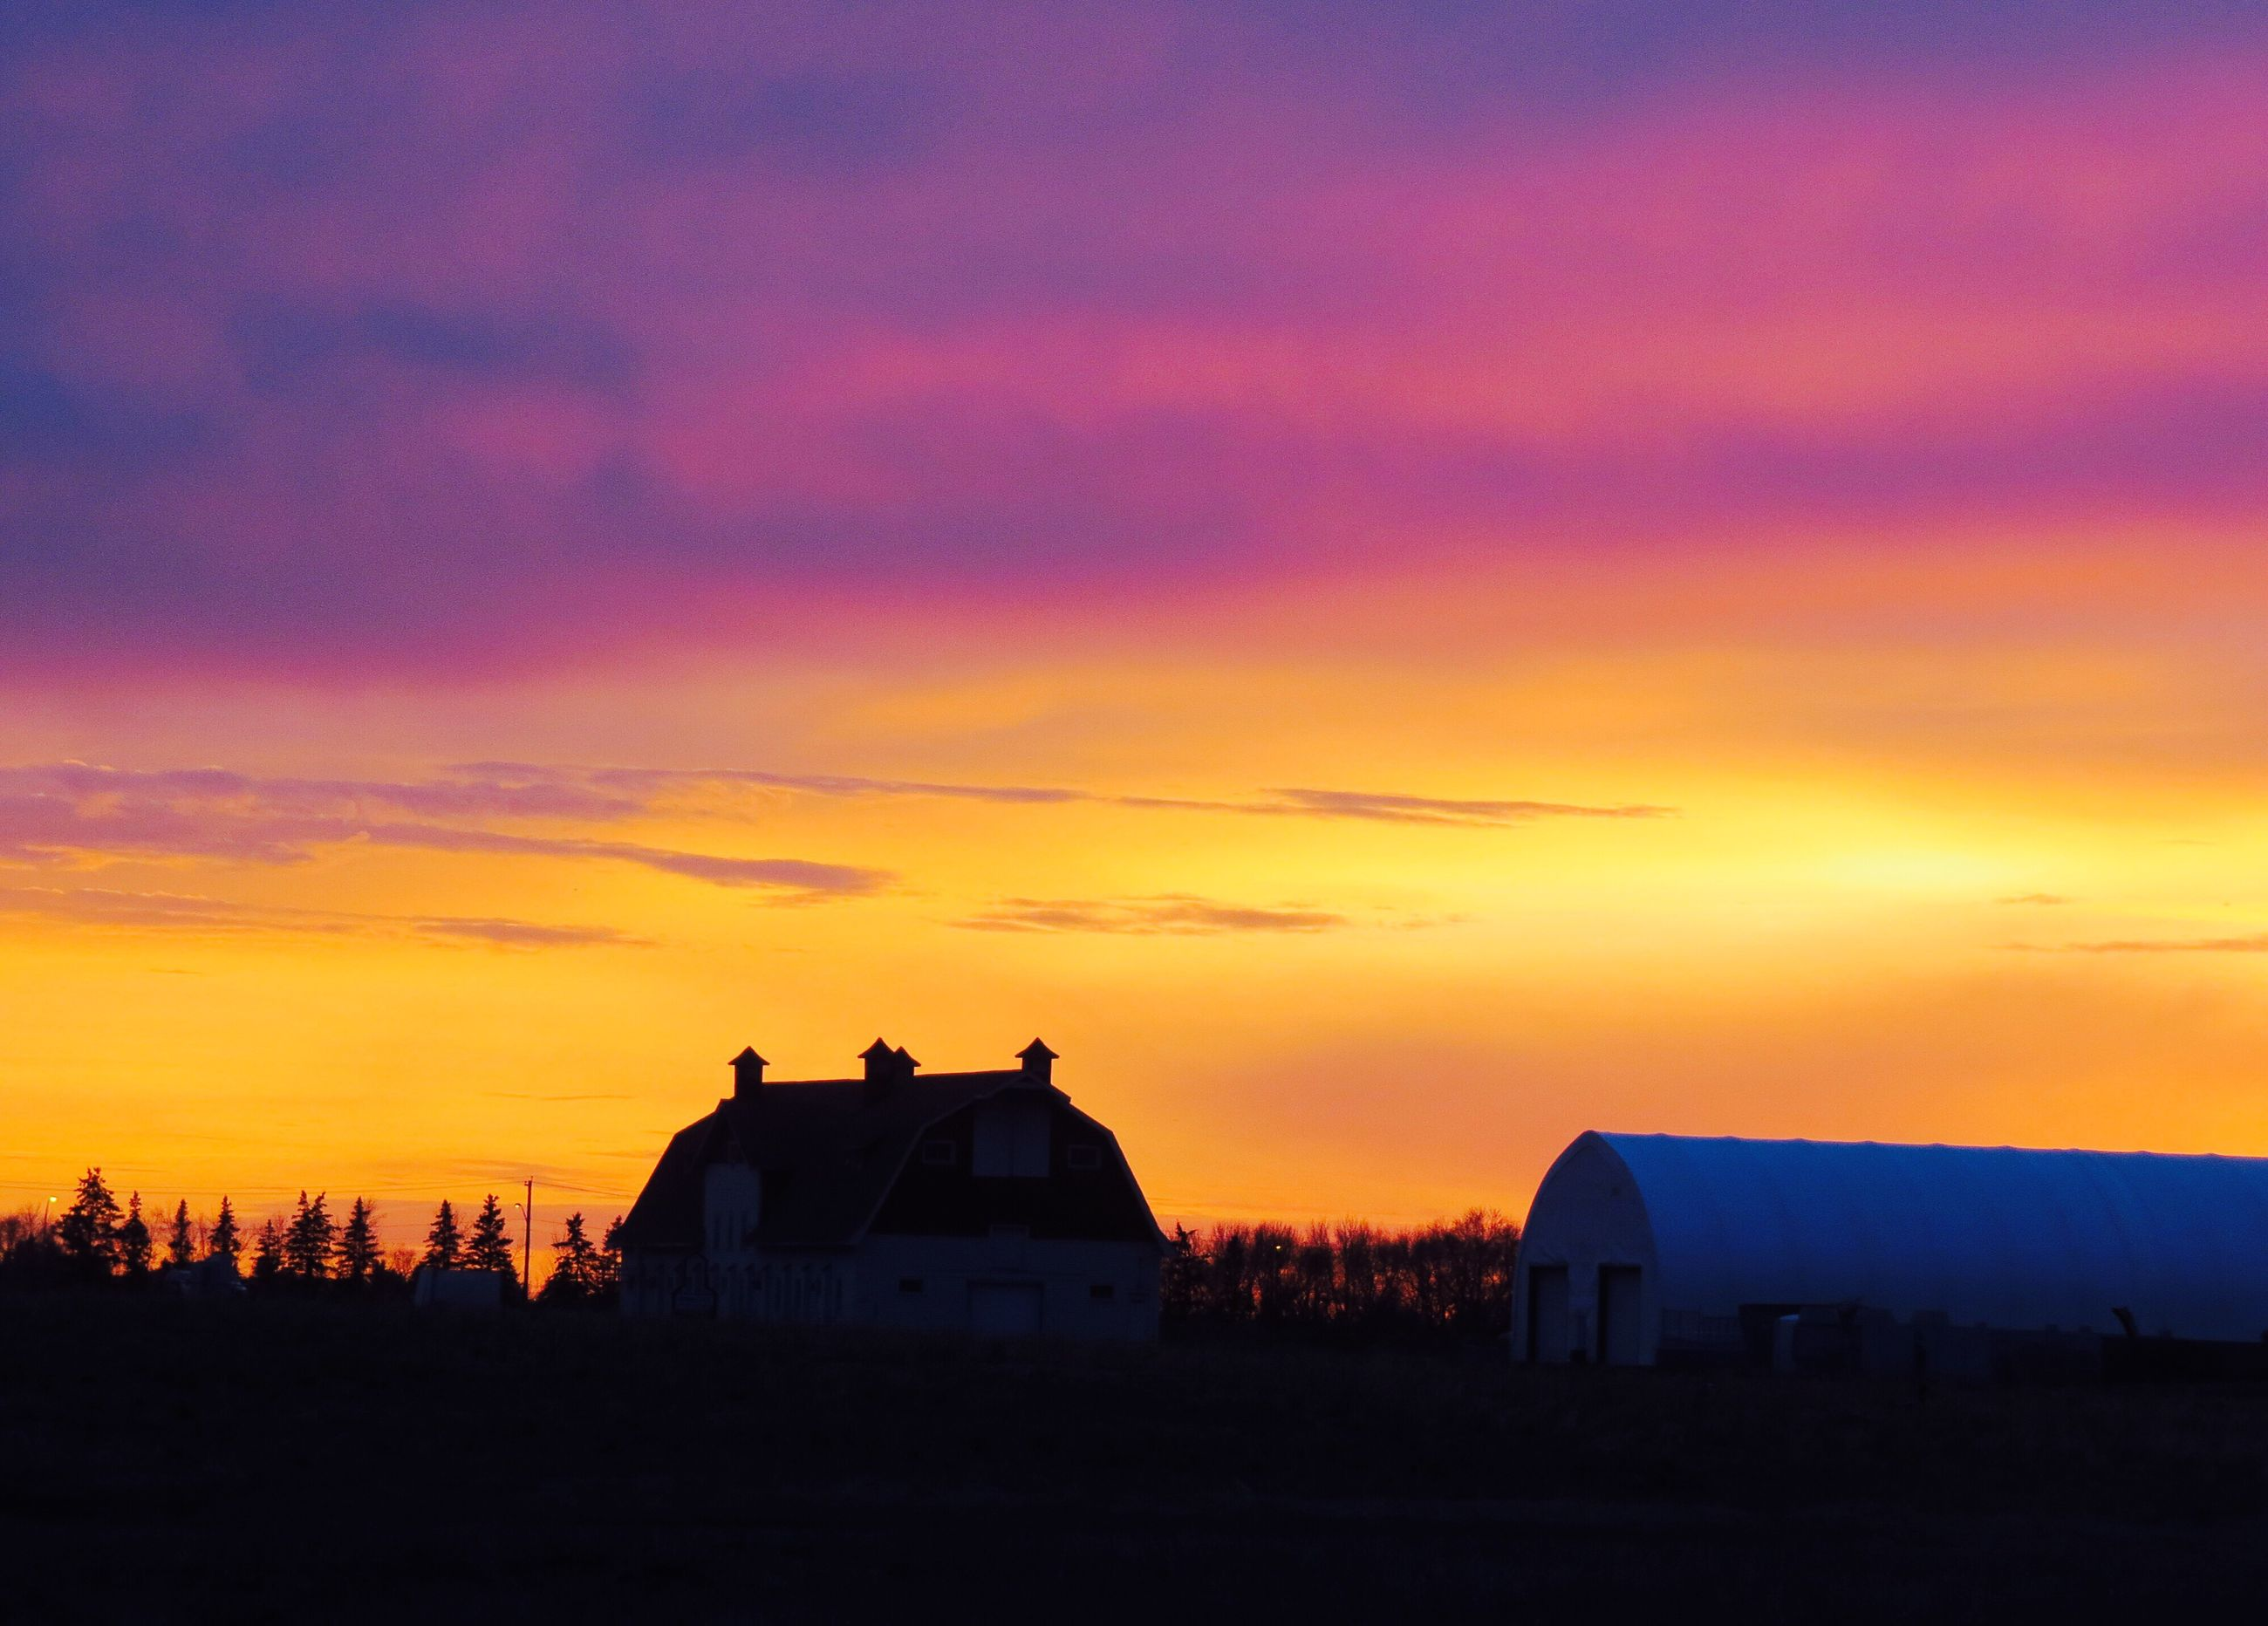 sunset, silhouette, sky, orange color, built structure, nature, building exterior, beauty in nature, tranquil scene, scenics, architecture, outdoors, no people